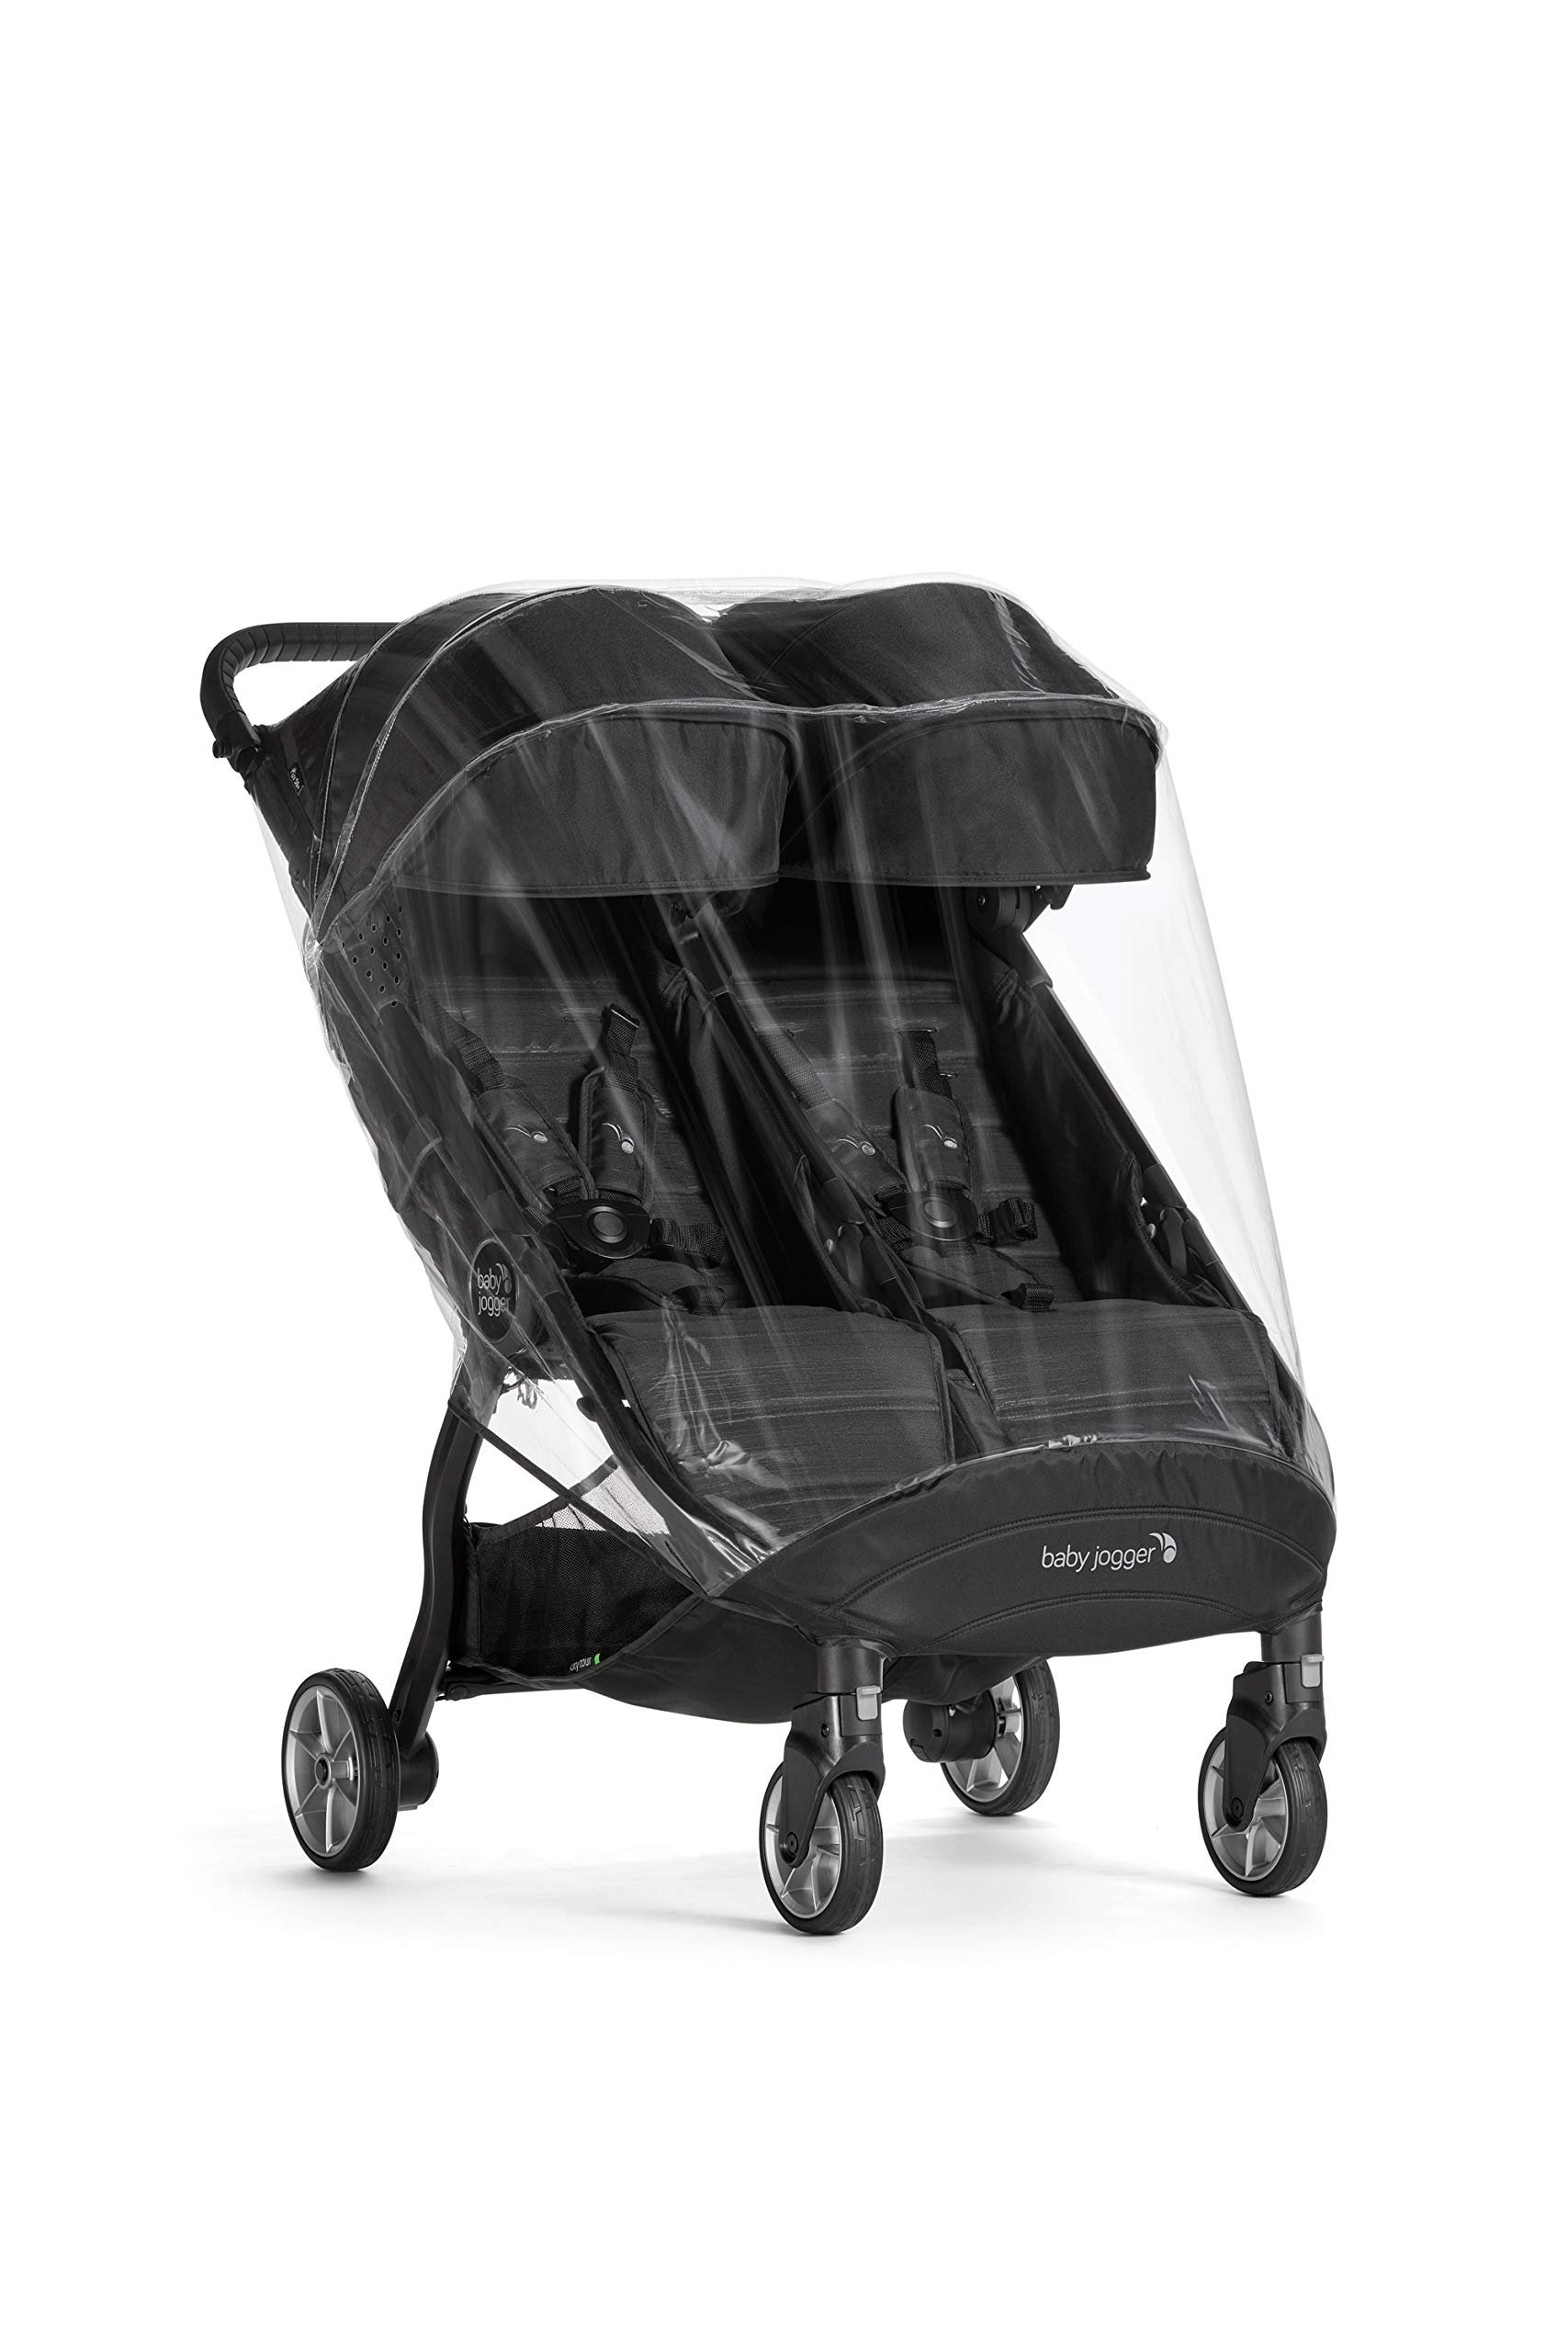 Baby Jogger City Tour 2 Double, Weather Shield